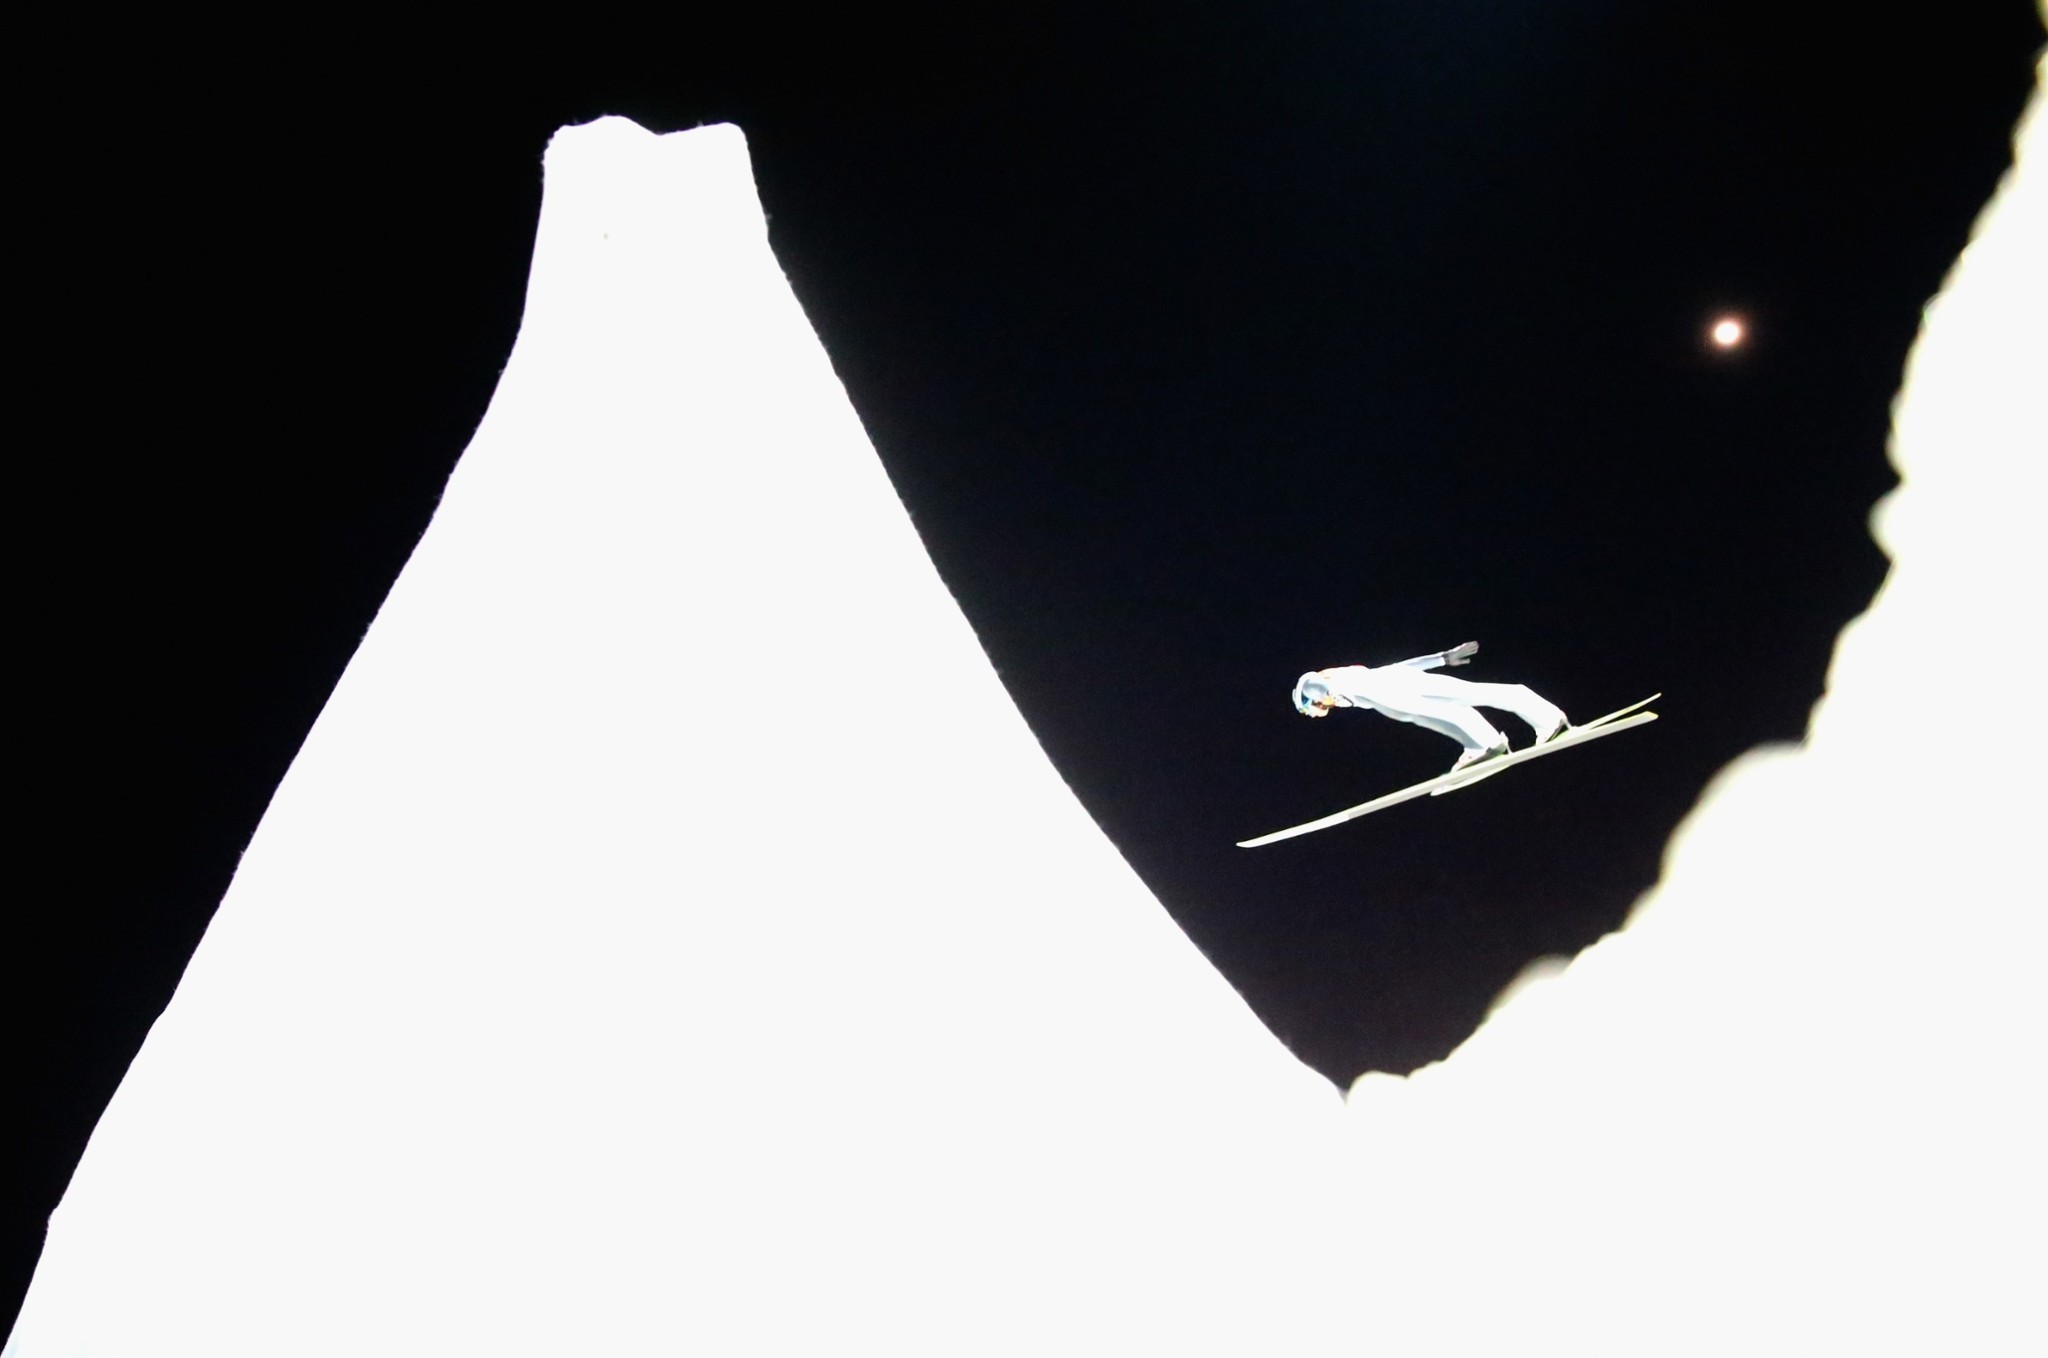 Sochi 2014: 10 high contrast shots at the Winter Olympics – in pictures